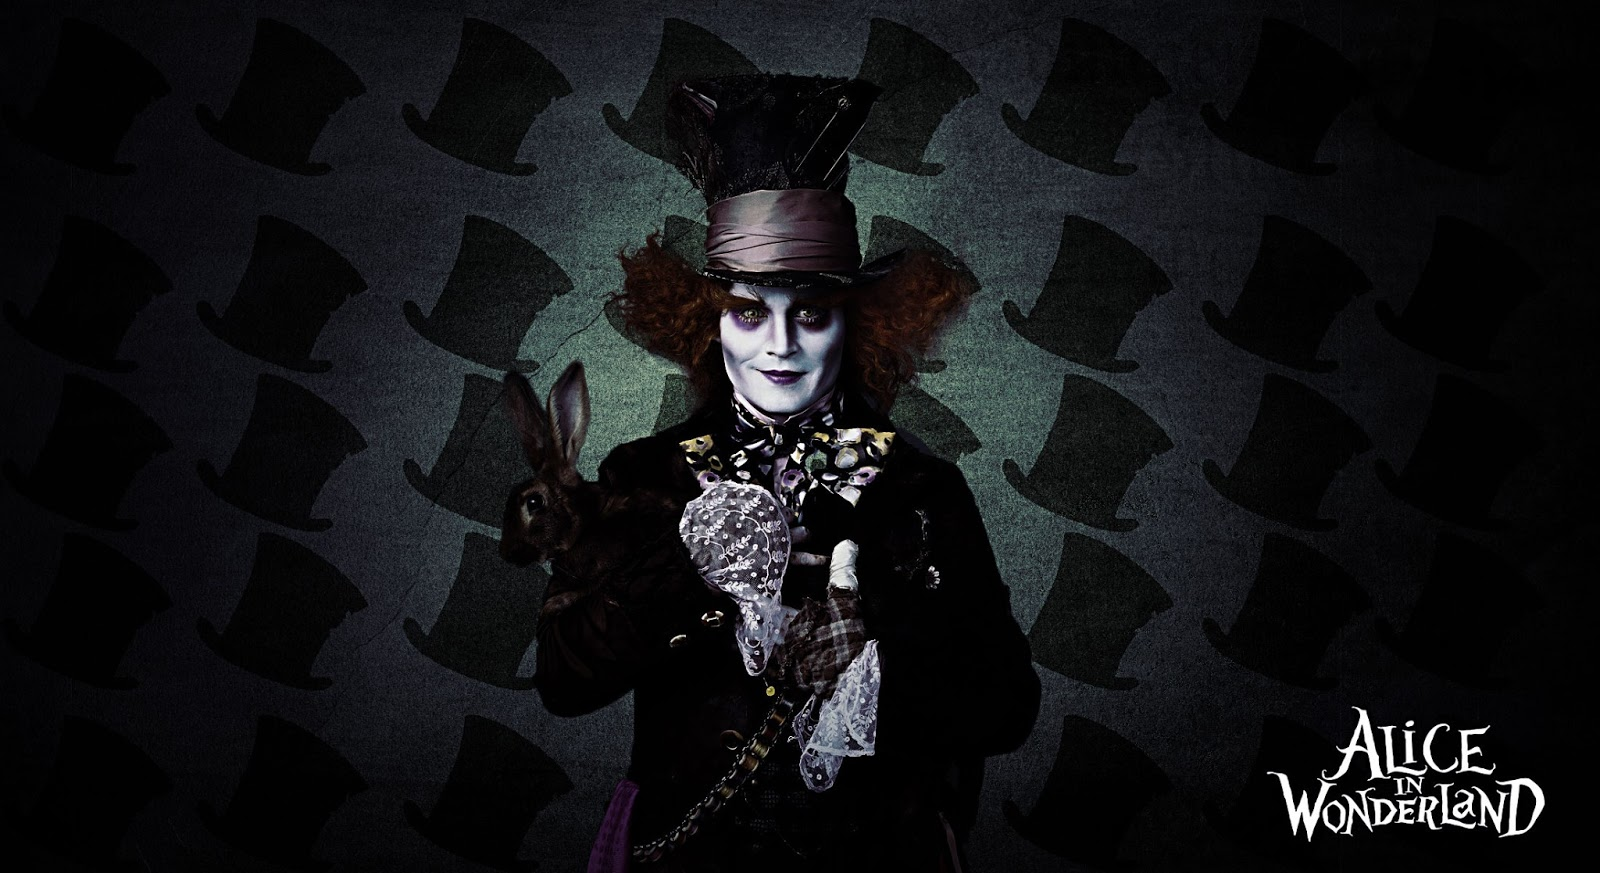 Mad Hatter Quotes Wallpaper. QuotesGram